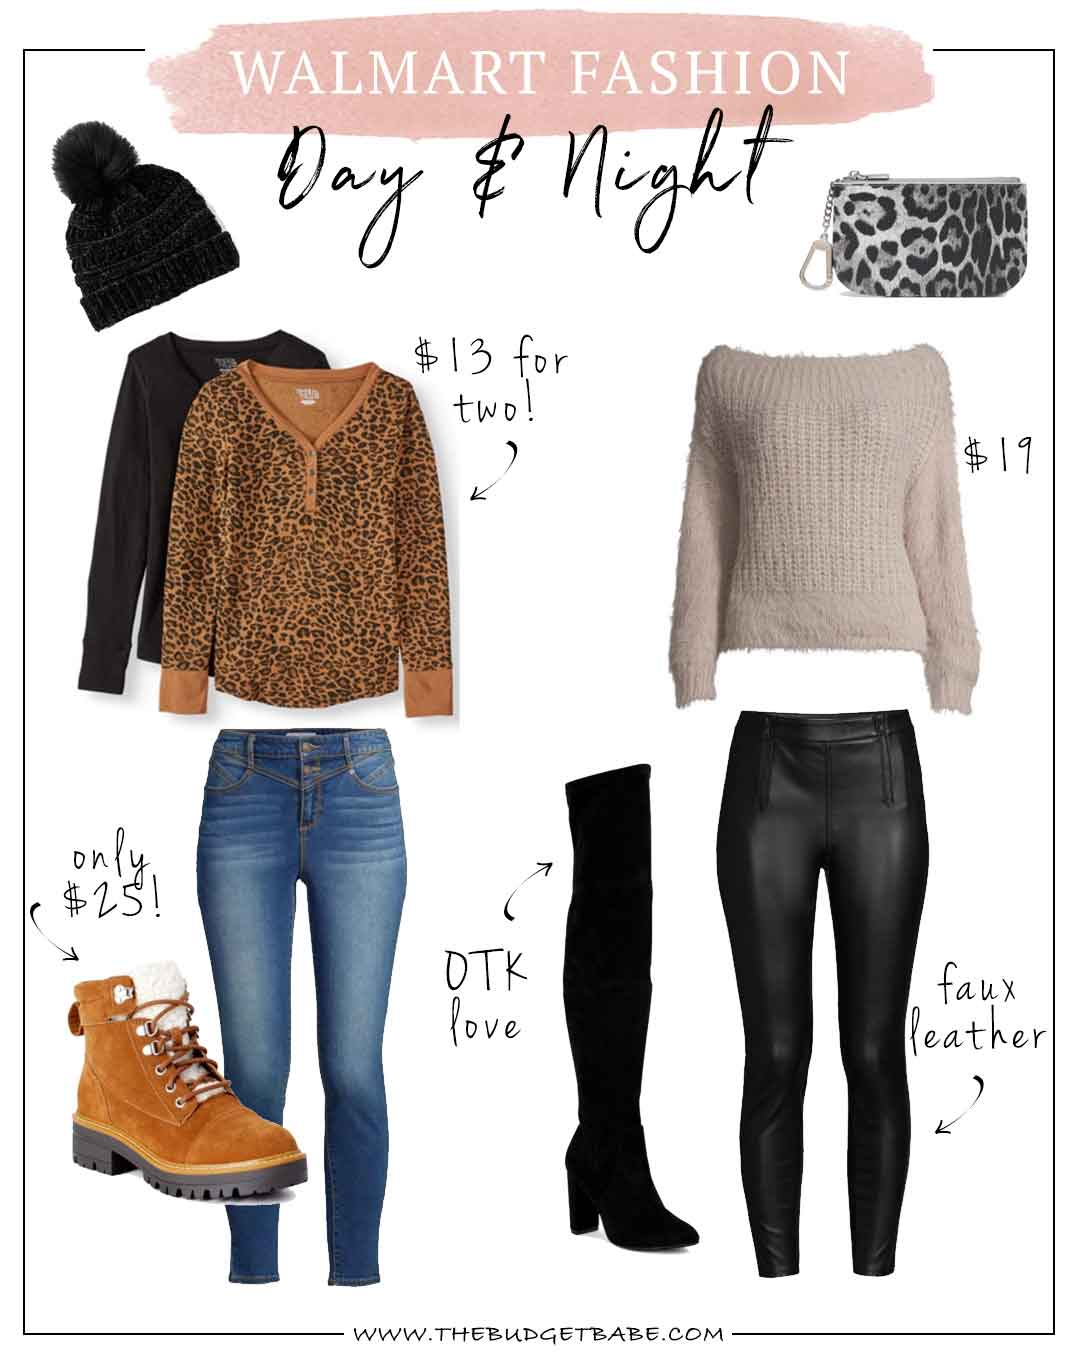 Walmart Fashion Outfit Ideas for Fall Day to Night Under $100 Total!